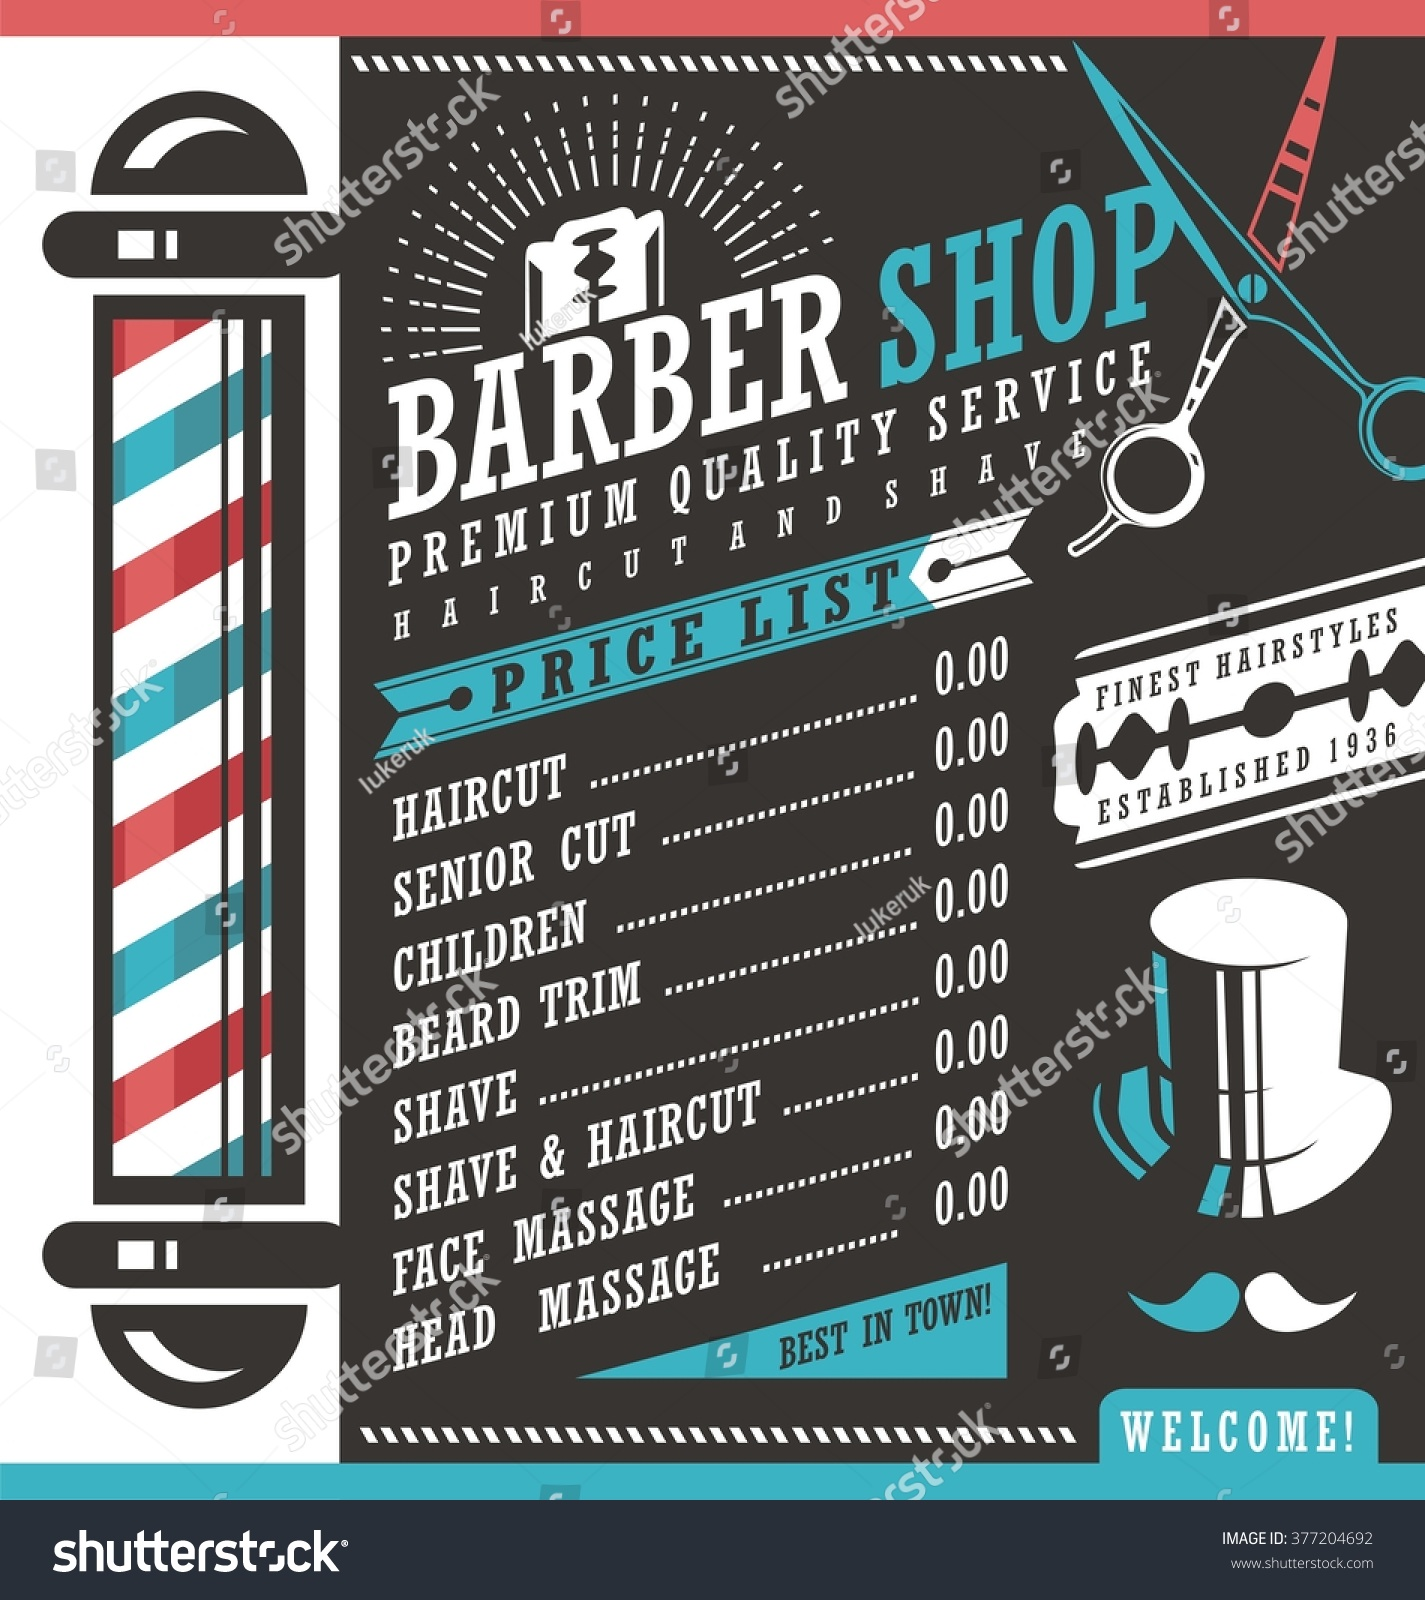 barber shop vector price list template stock vector royalty free